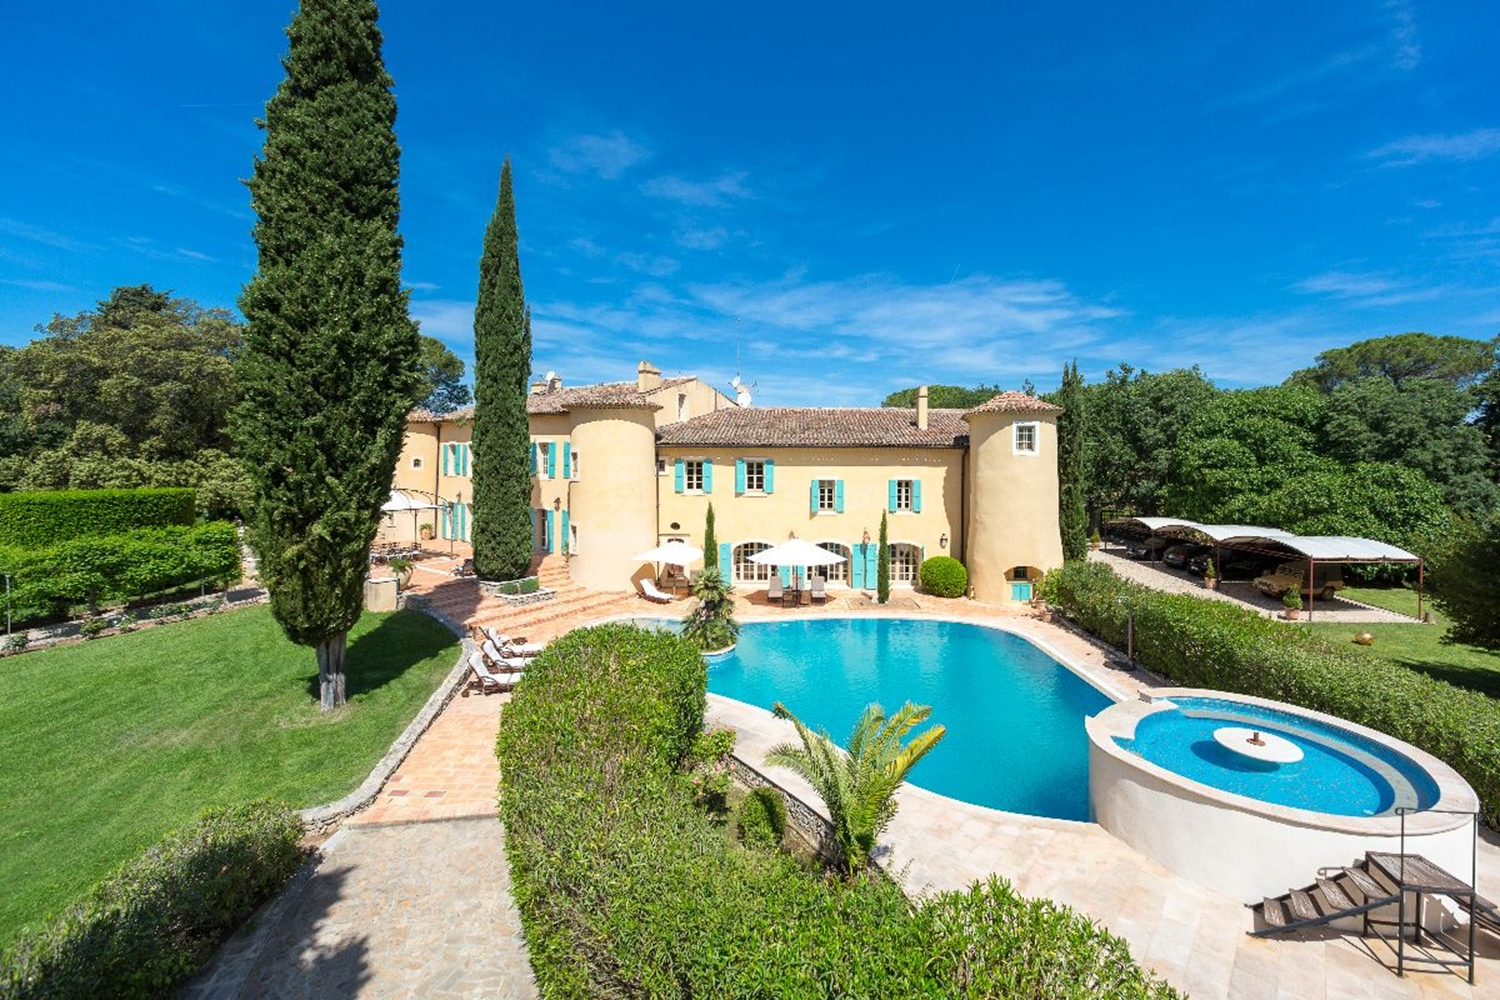 Stay in a Vineyard Chateau in Provence